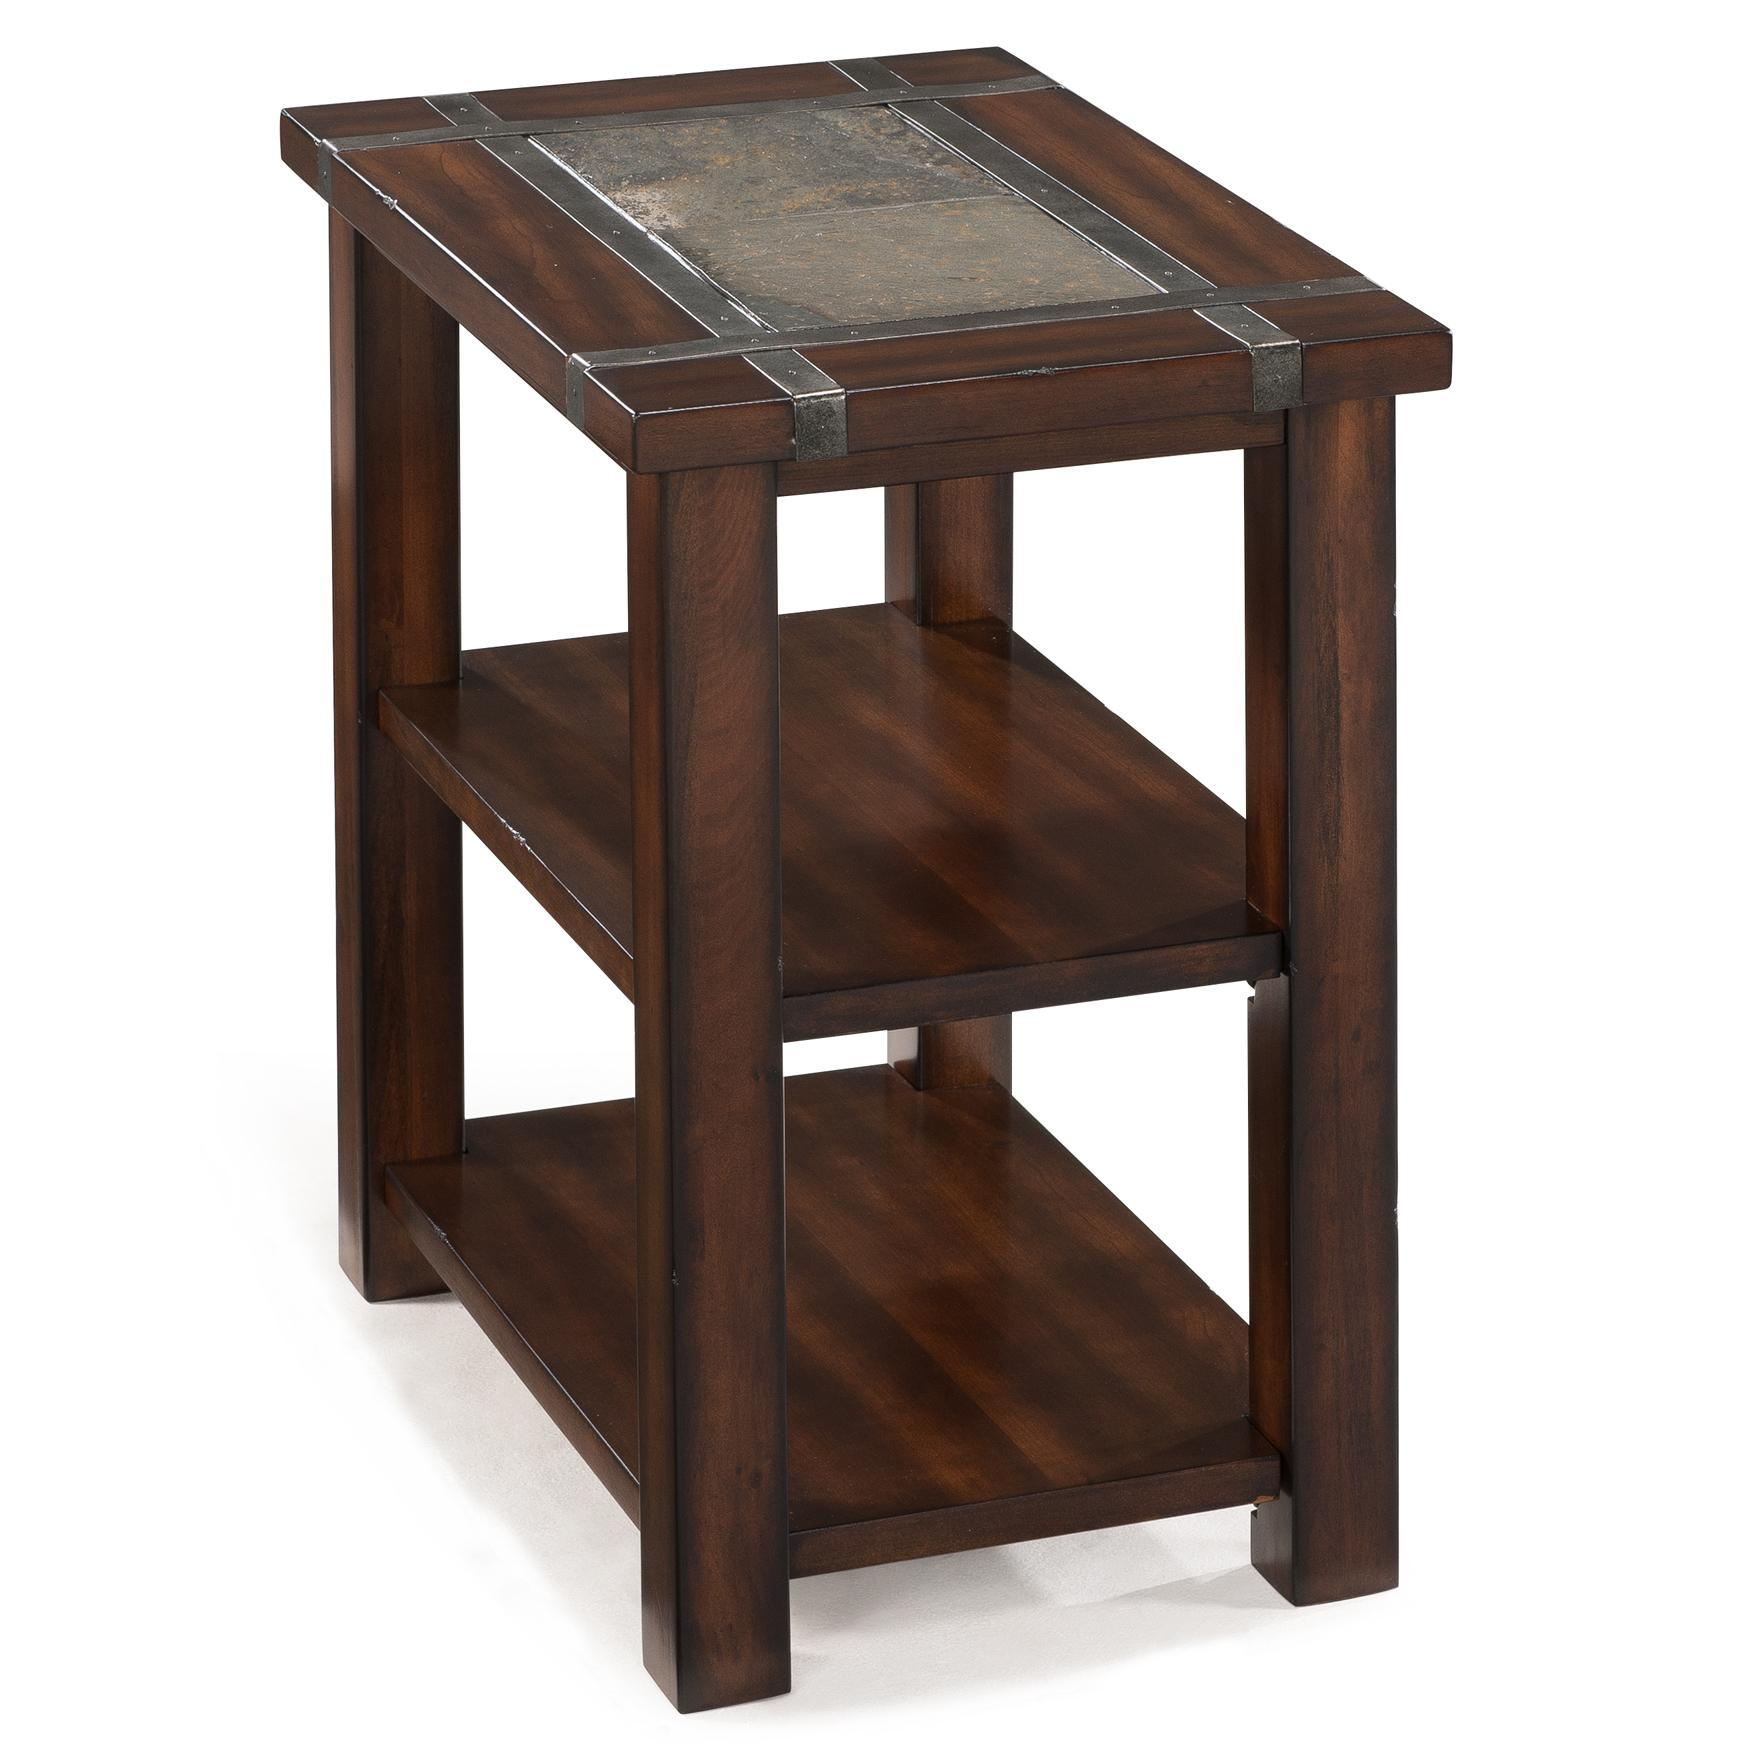 Rectangular Chairside End Table with 2 Shelves